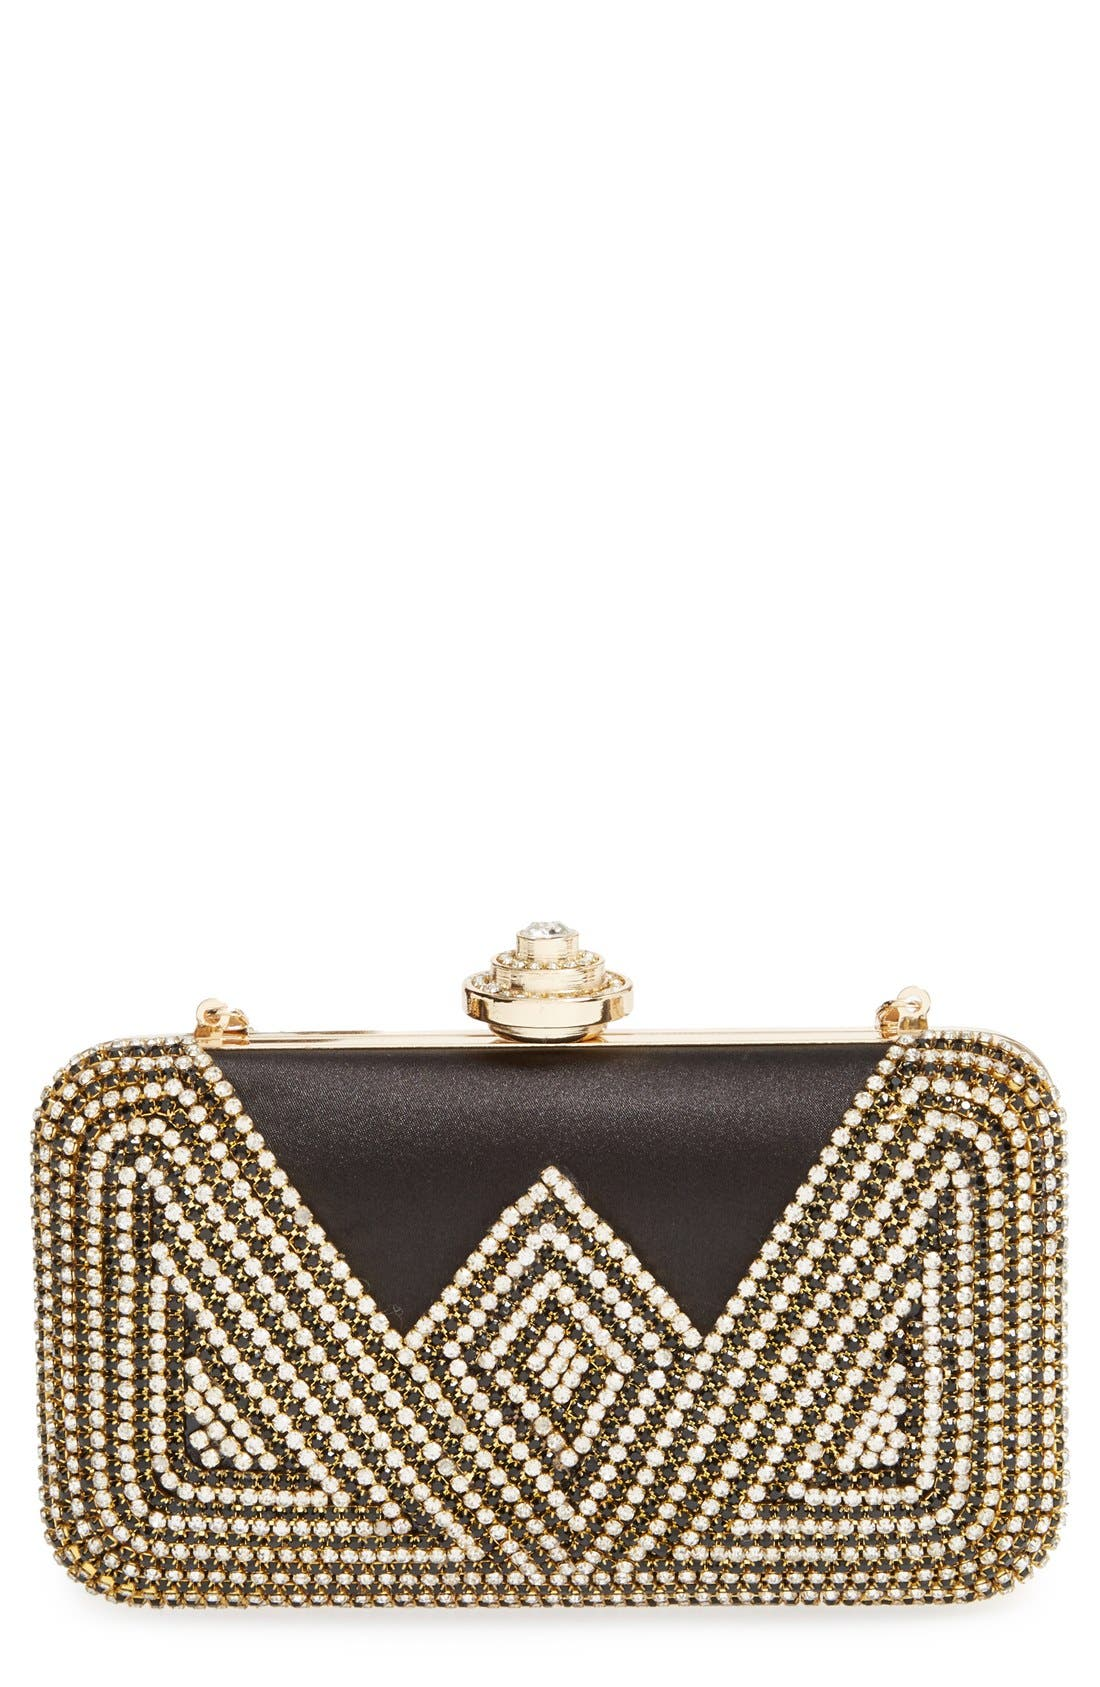 Main Image - Natasha Couture 'Deco' Crystal Clutch